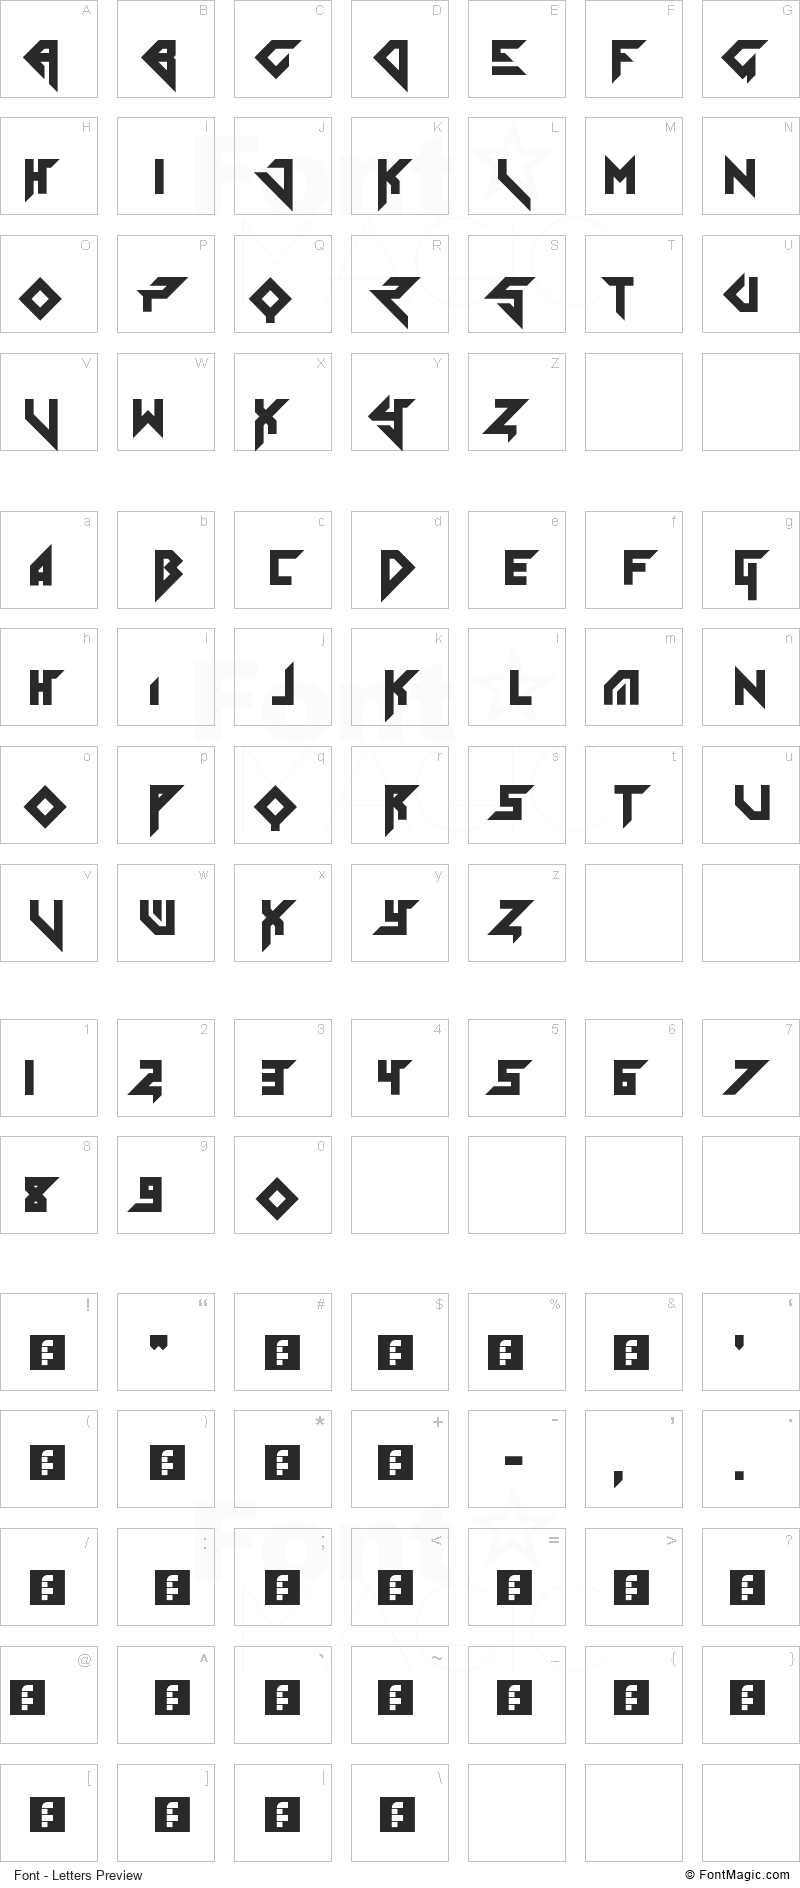 Tolerant Font - All Latters Preview Chart